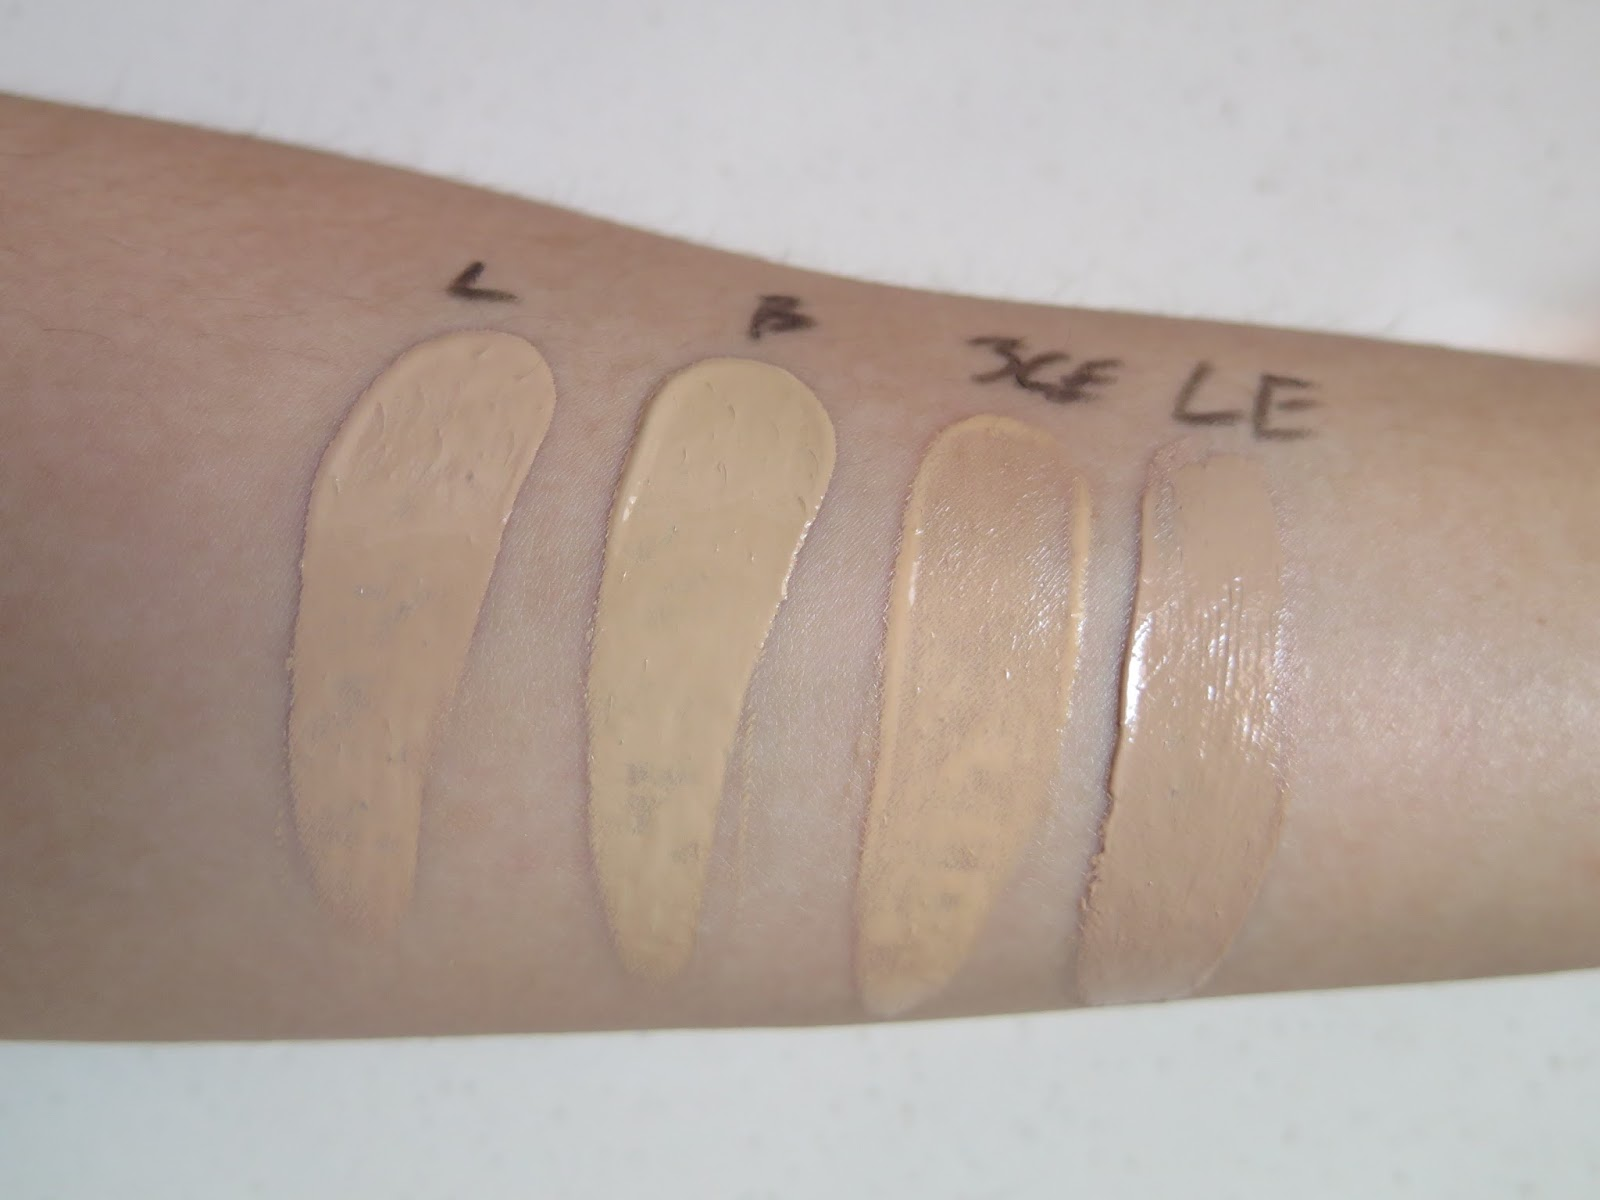 Glossing Waterful Foundation SPF15 PA+ by 3 Concept Eyes #6